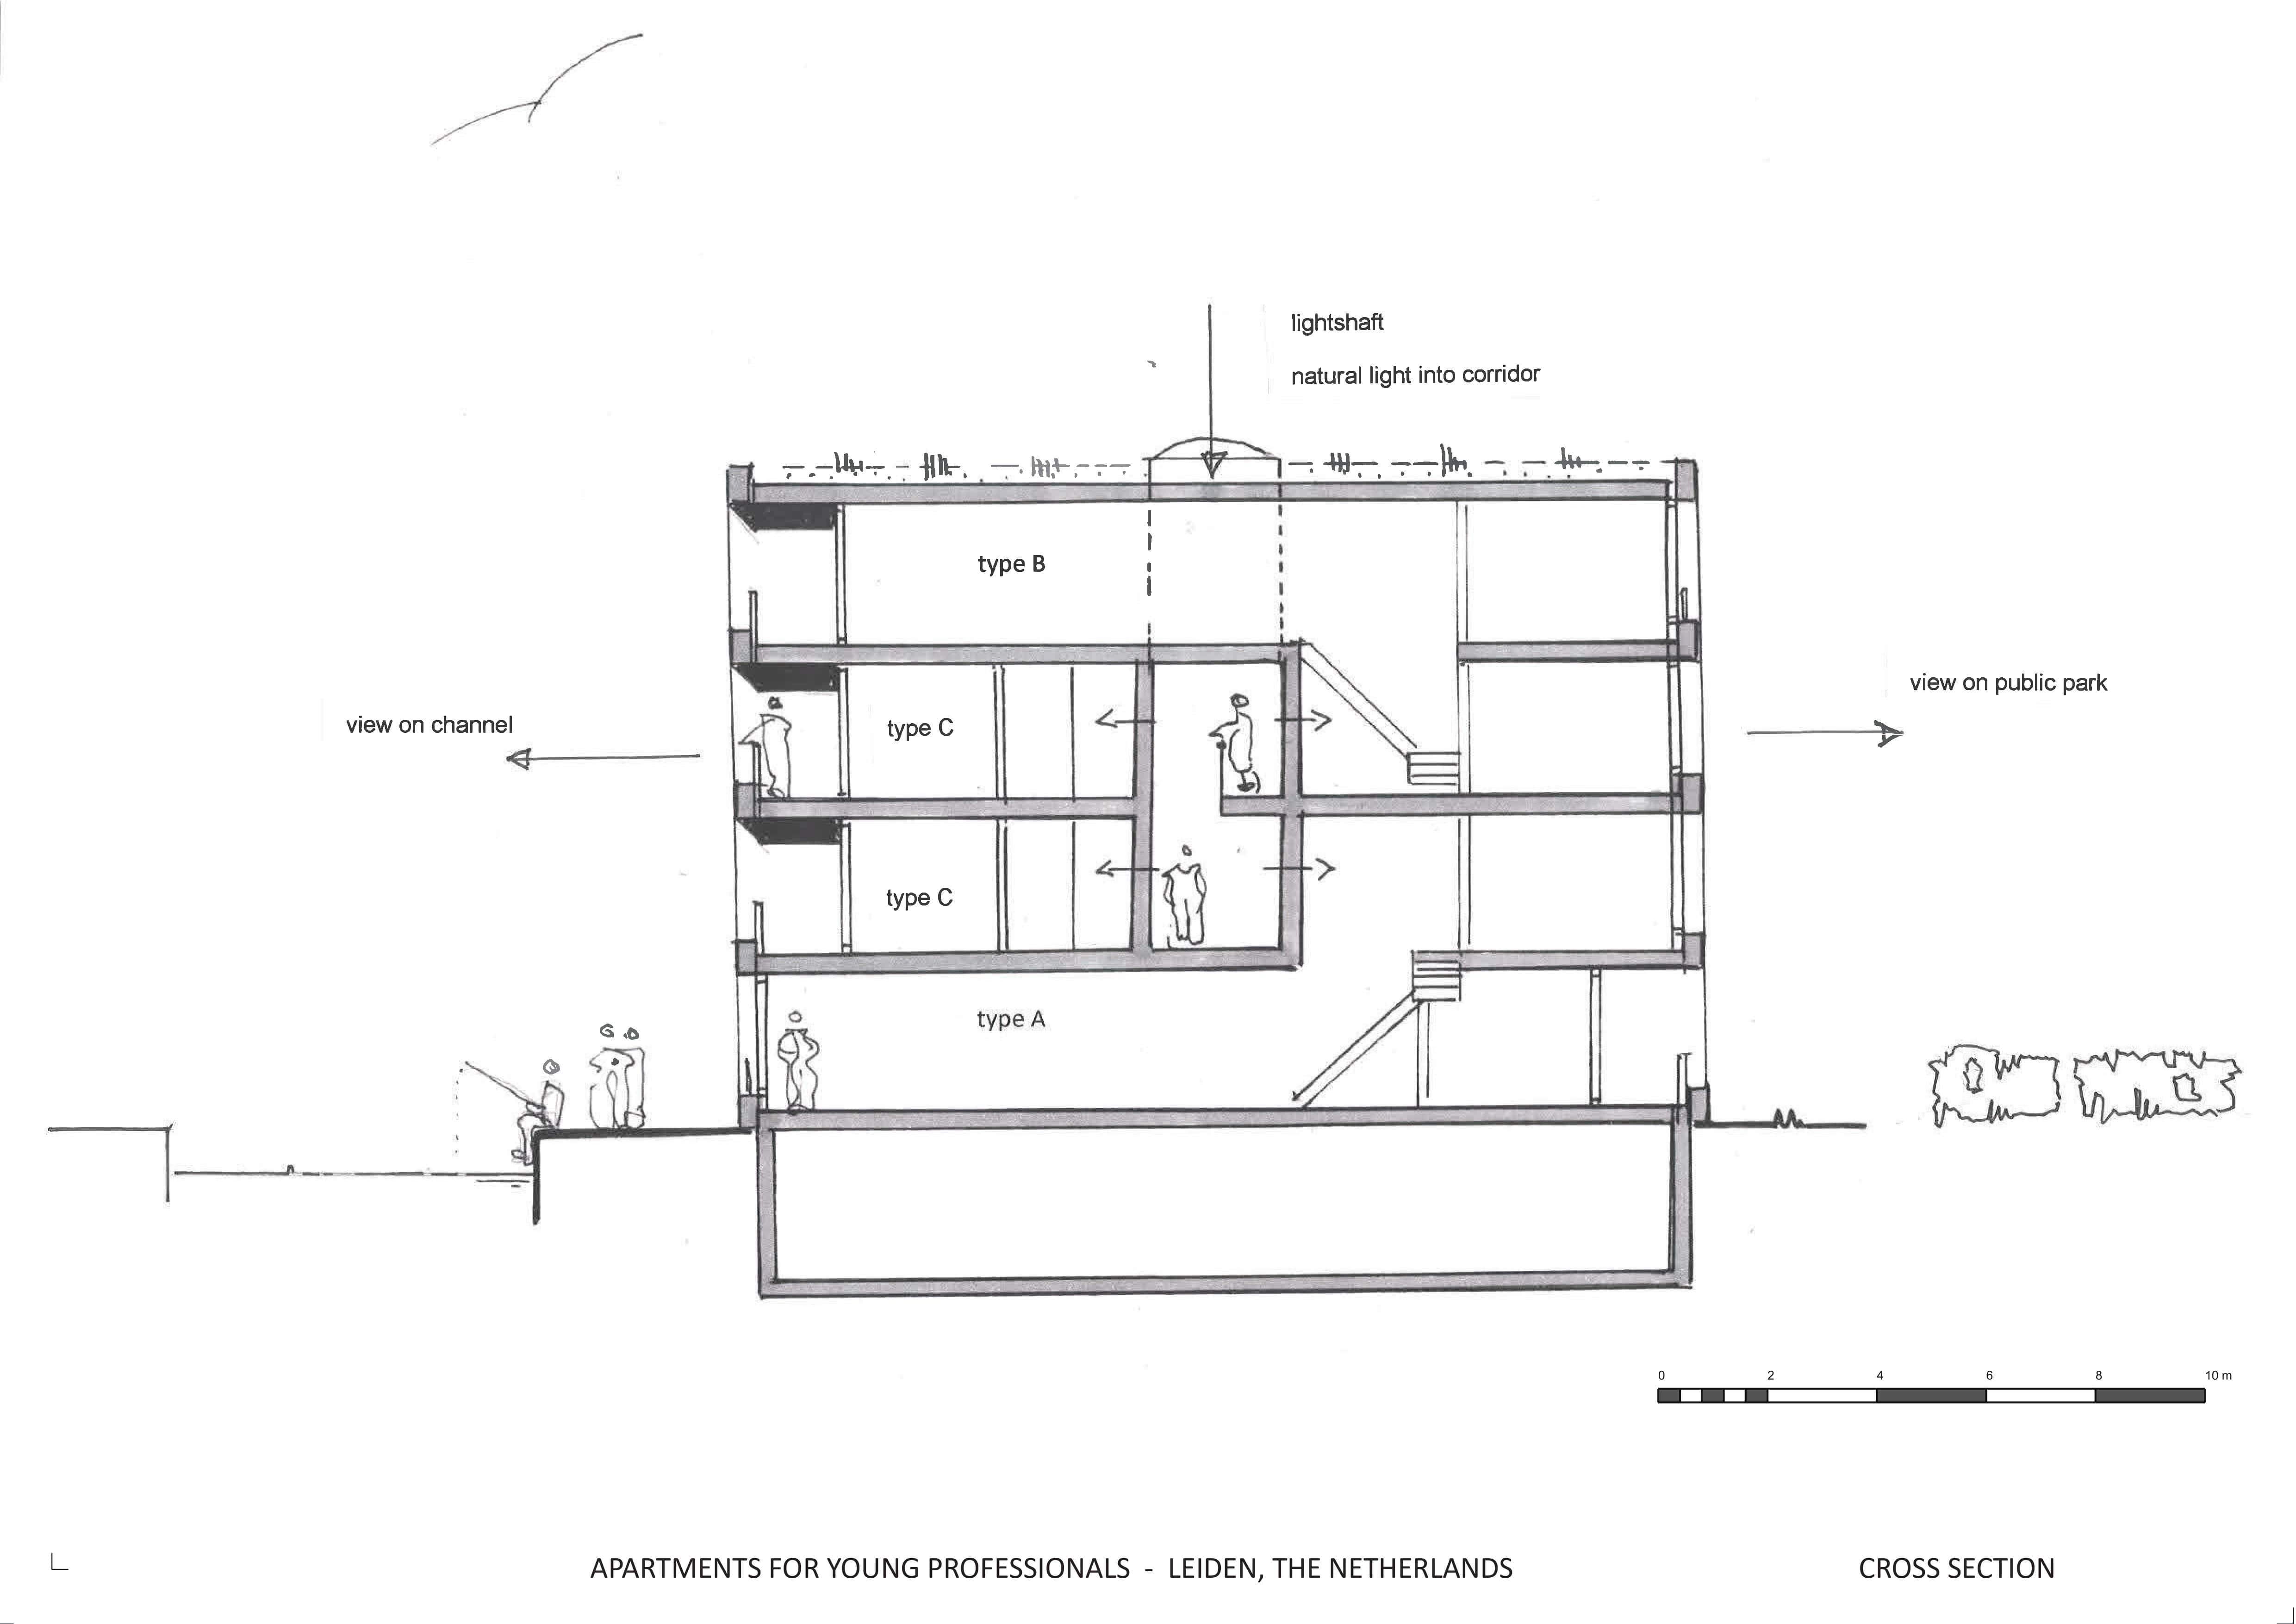 cross section block waardgarcht splinter architecten}